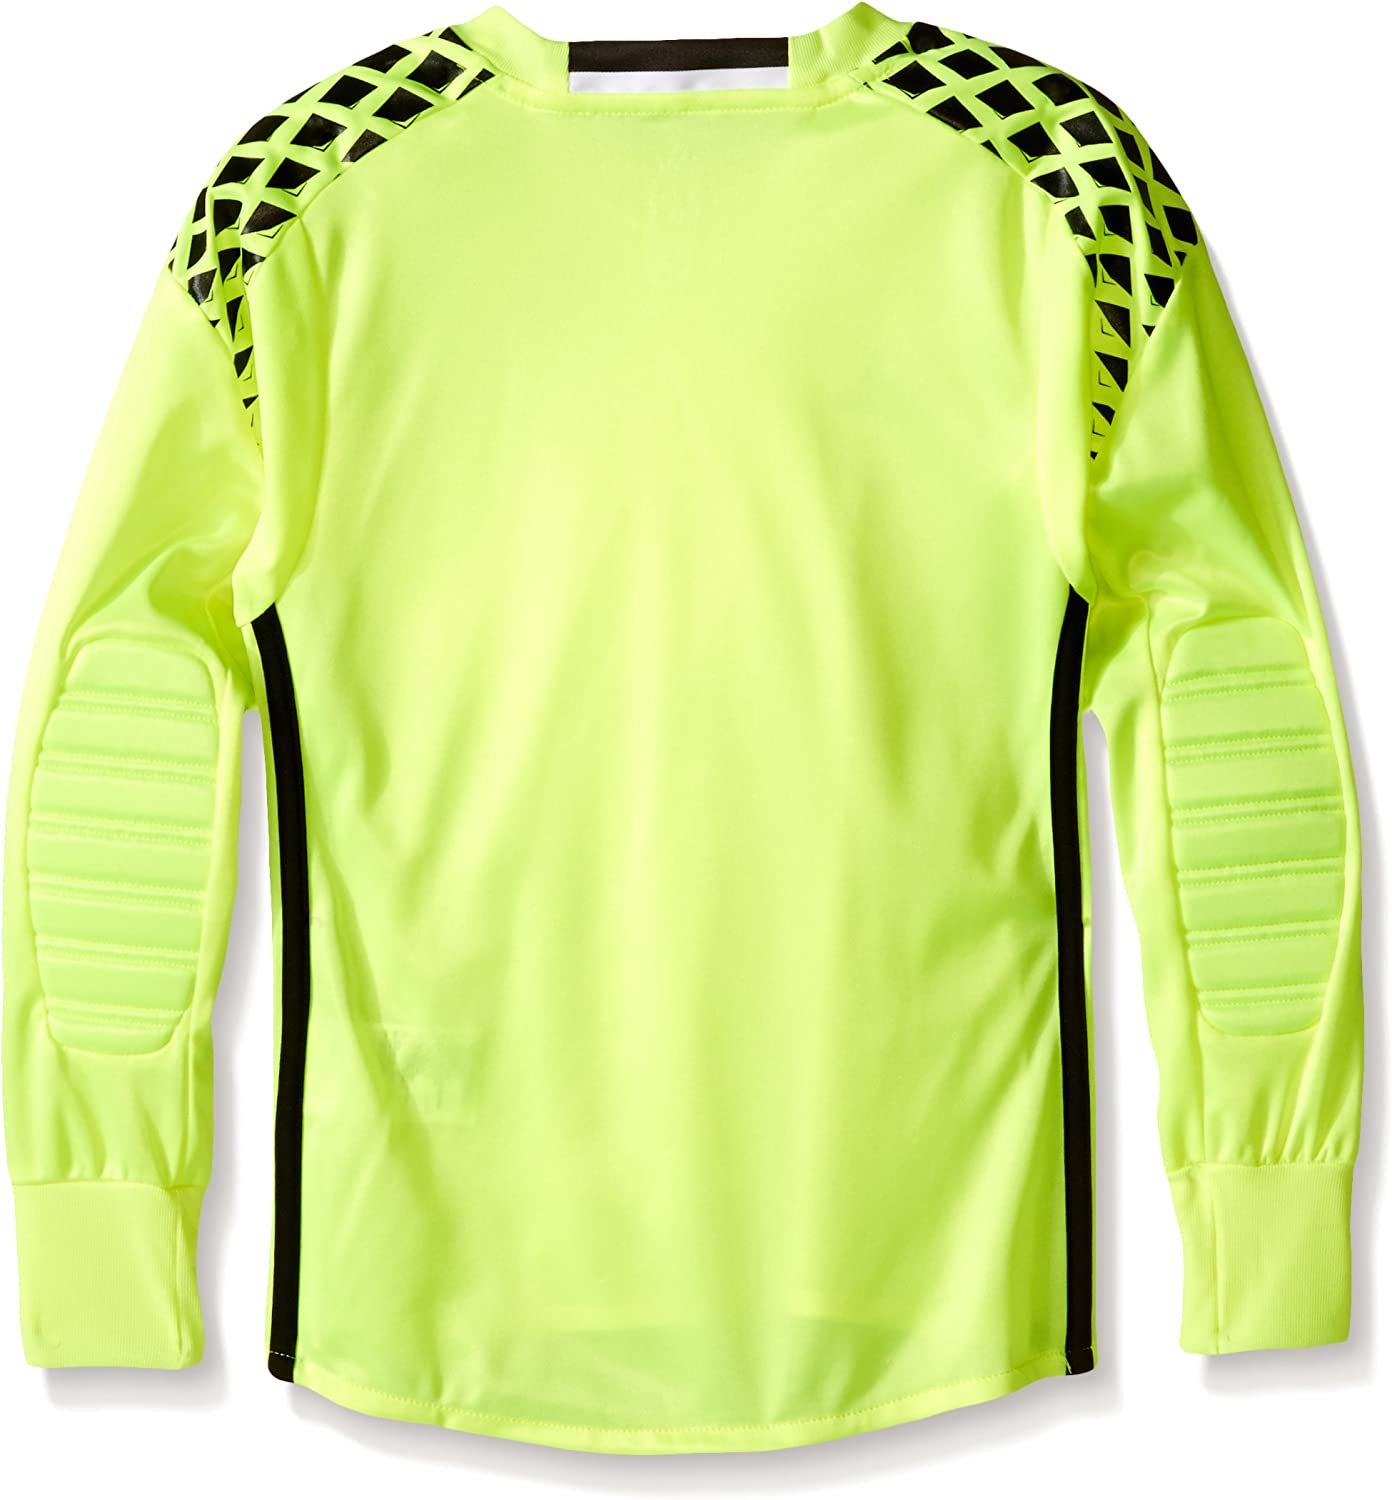 Amazon.com : adidas Youth Onore 16 Goalkeeping Jersey : Sports ...